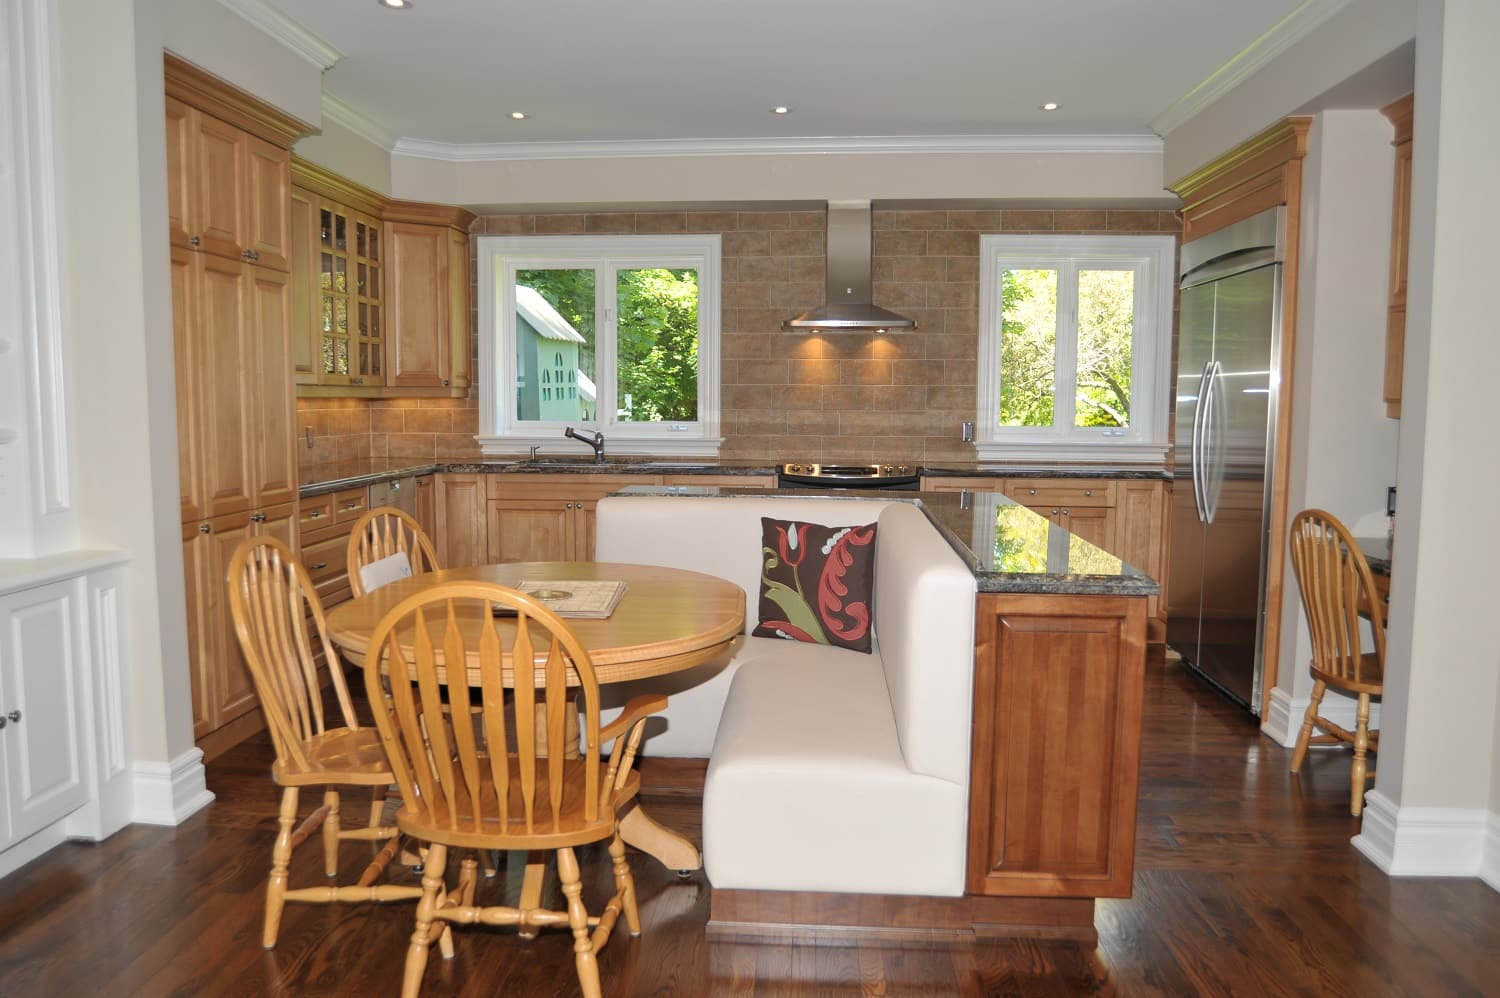 Royal Maple Natural and Island Stained Fruitwood and Chocolate Glazed___aa3___Meadowbank Rd.  Etobicoke.